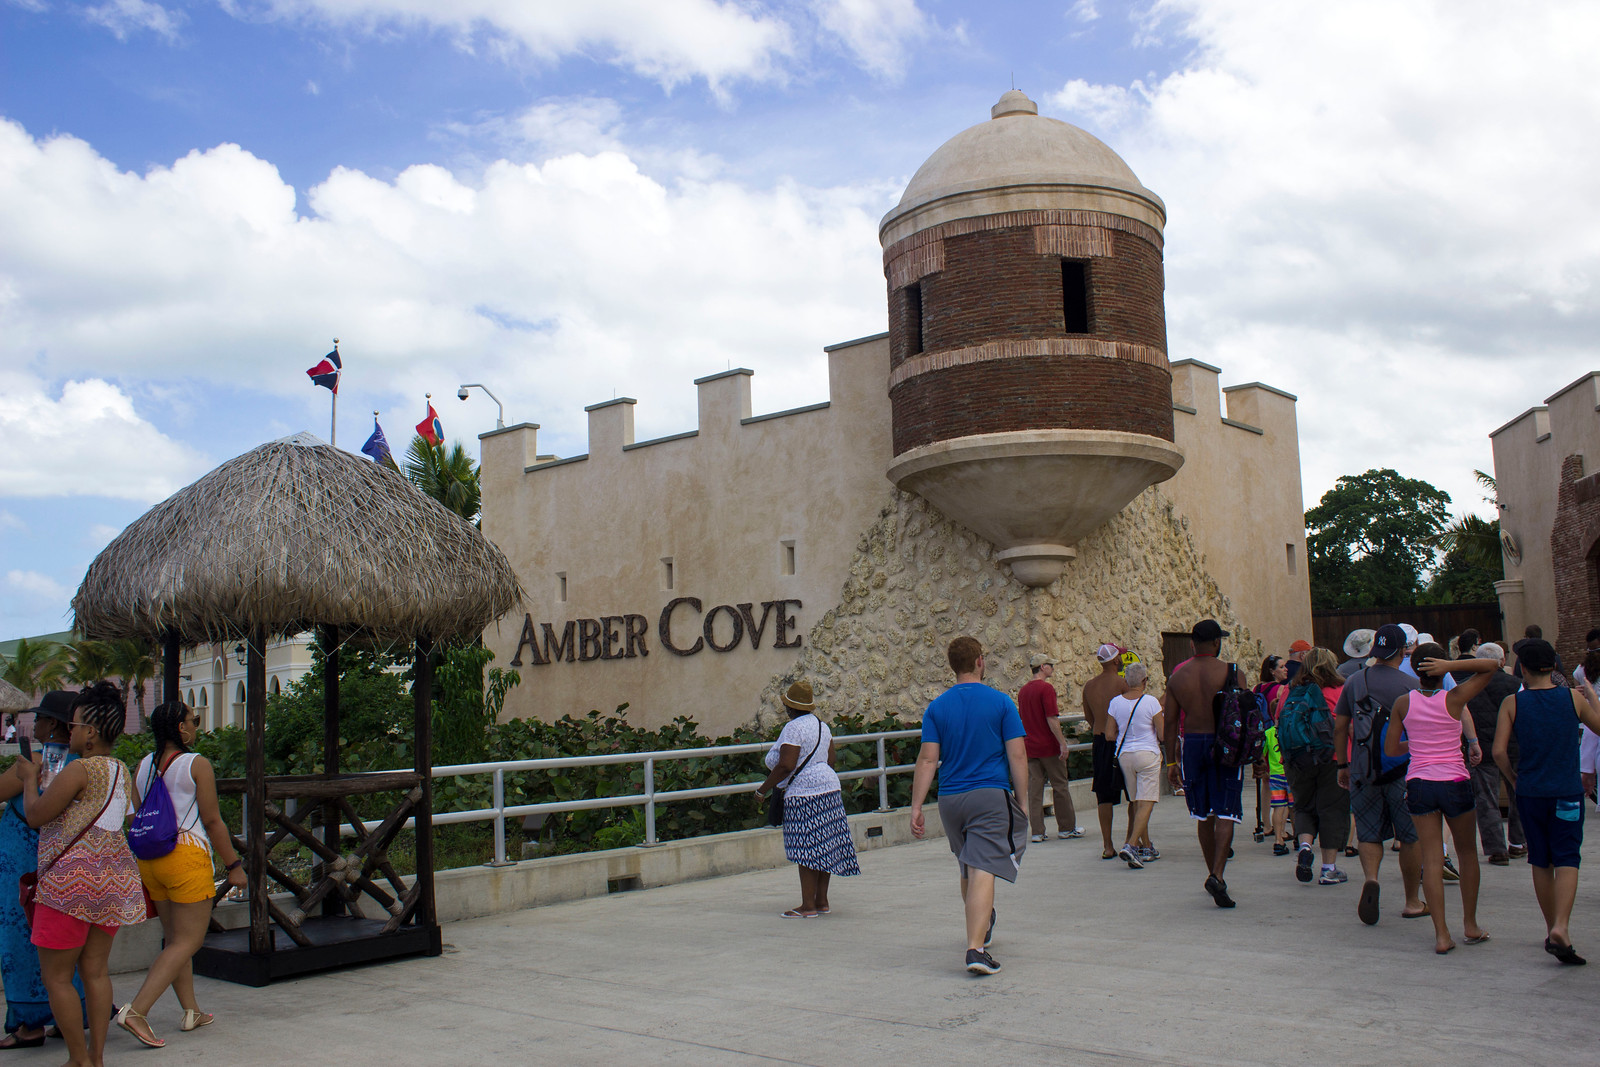 What to Do in Amber Cove Dominican Republic - A Cruise Port Guide - Entrance to Amber Cove